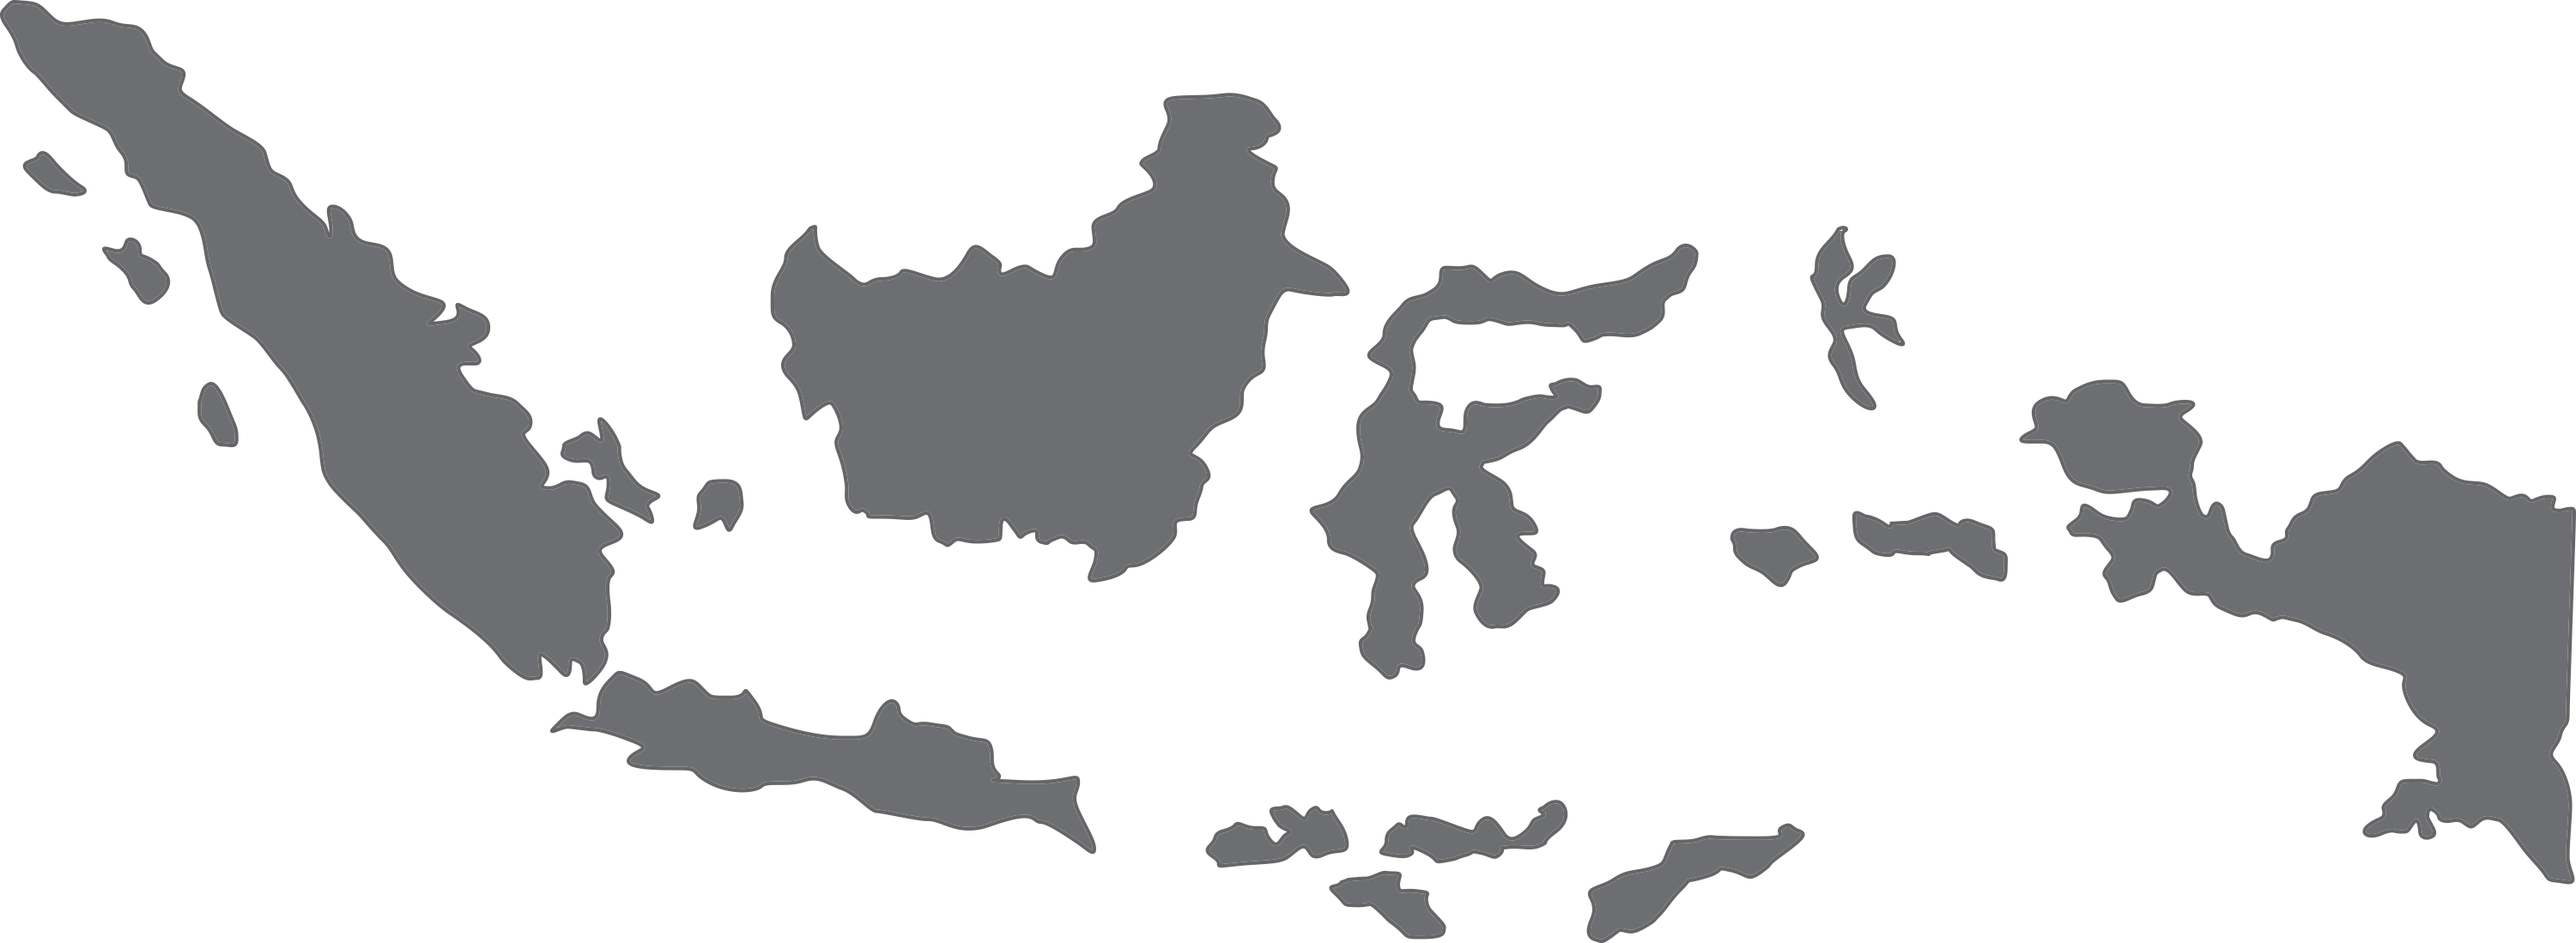 Pulau Indonesia Png 5 PNG Image